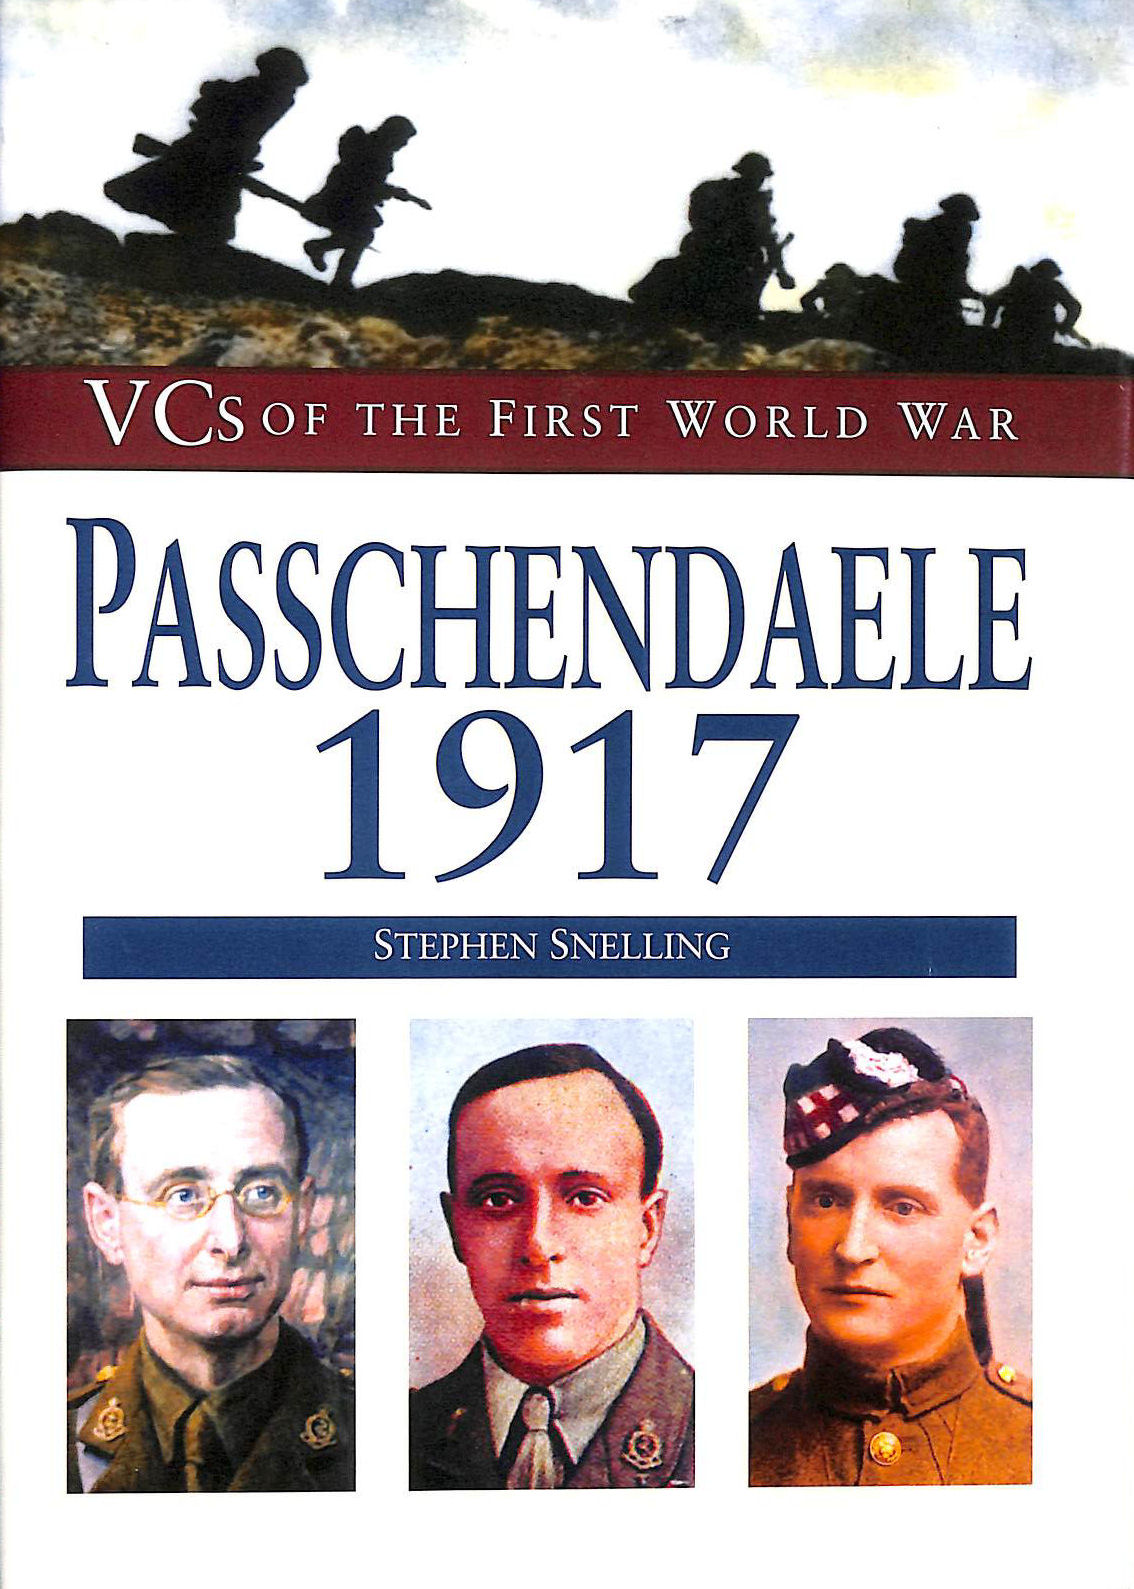 Image for Passchendaele, 1917 (VCs of the First World War)